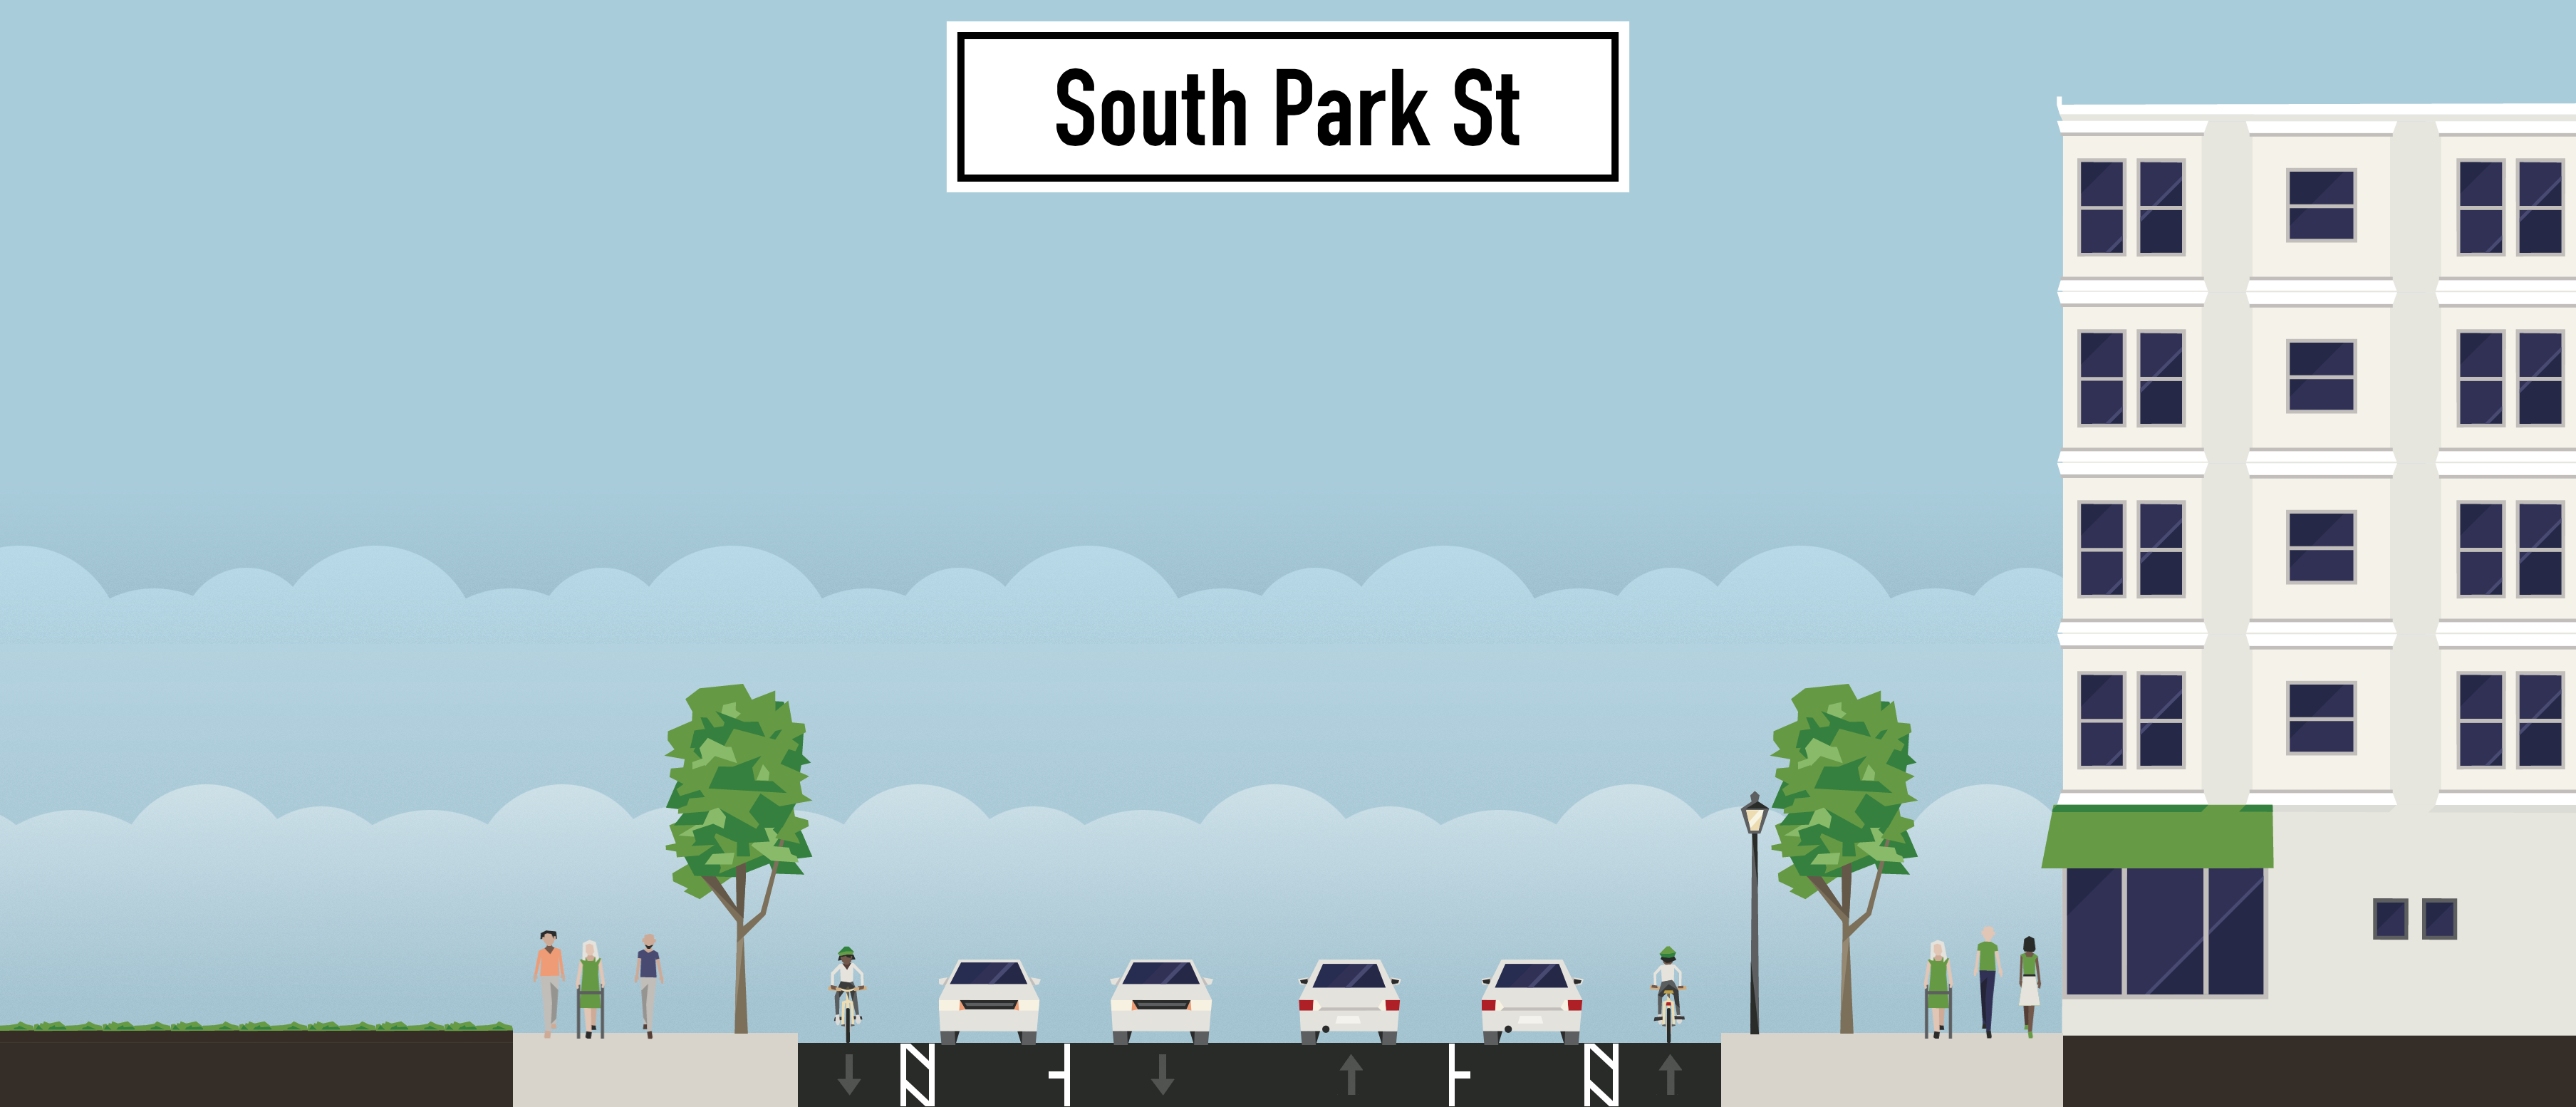 protected bicycle lane south park